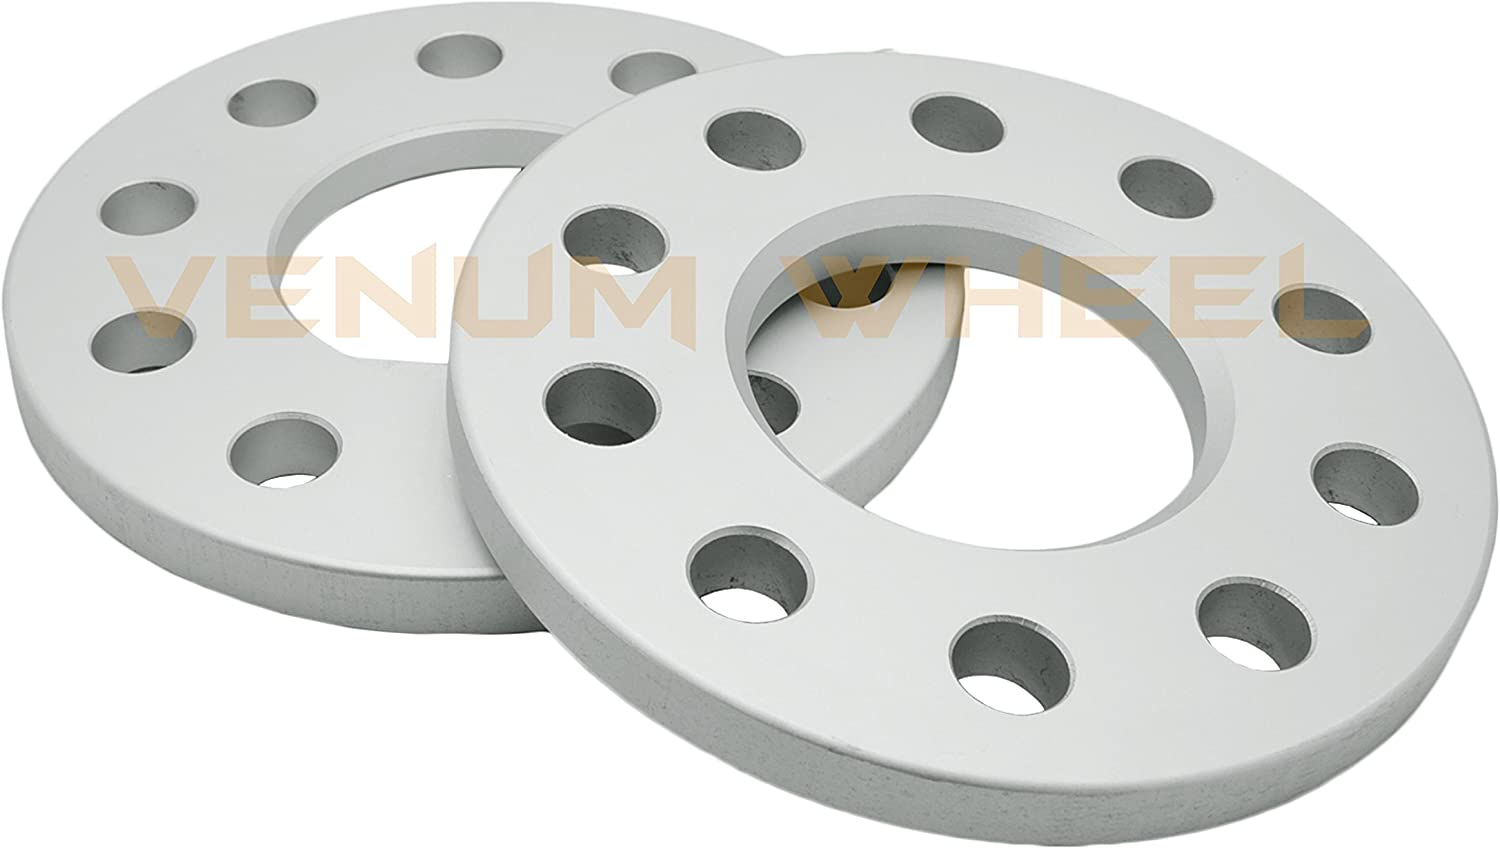 Complete Staggered Kit of 15mm /& 20mm Hubcentric Wheel Spacers for 2003-2009 Mercedes CLK Includes Extended 12x1.5 Ball Seat Bolts